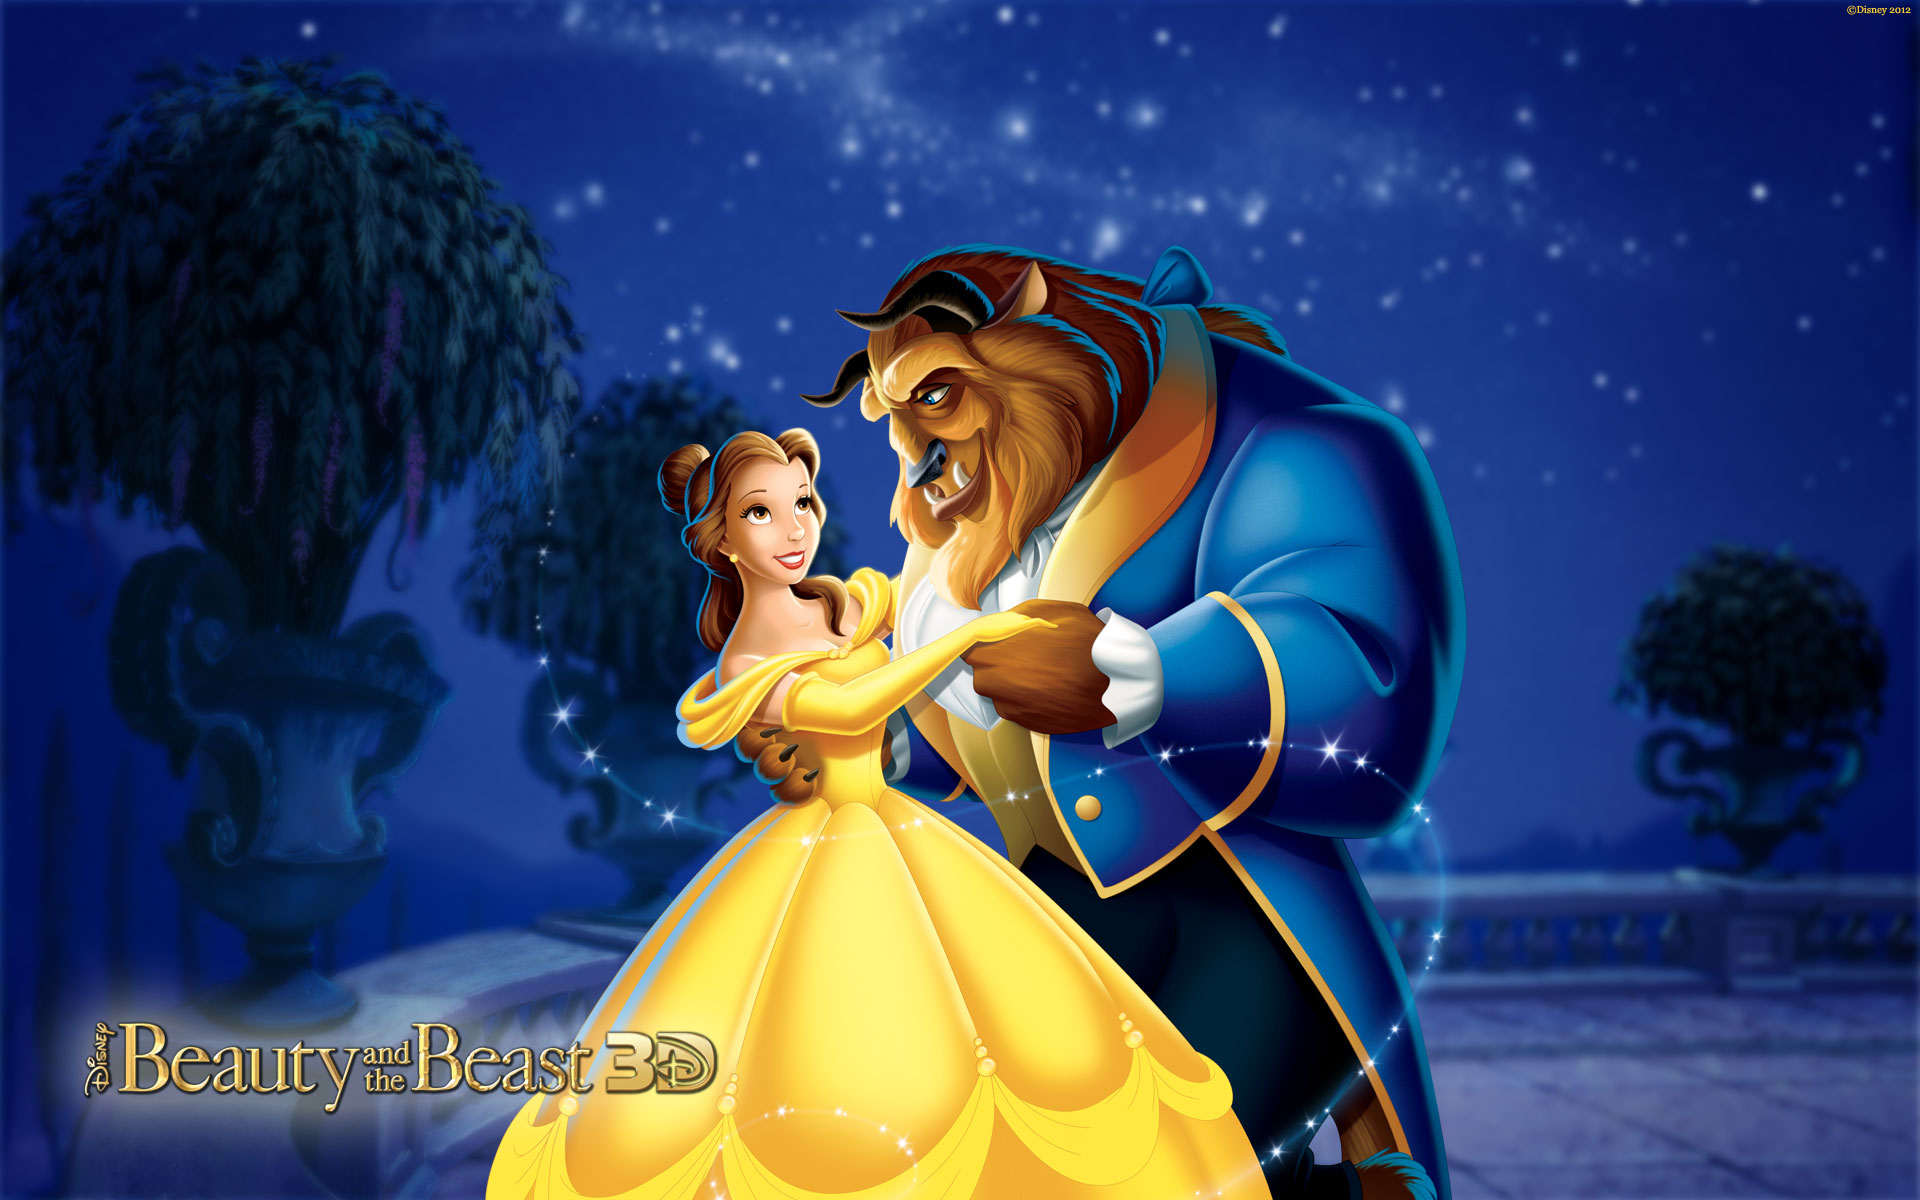 Disney princess beauty and the beast 3d